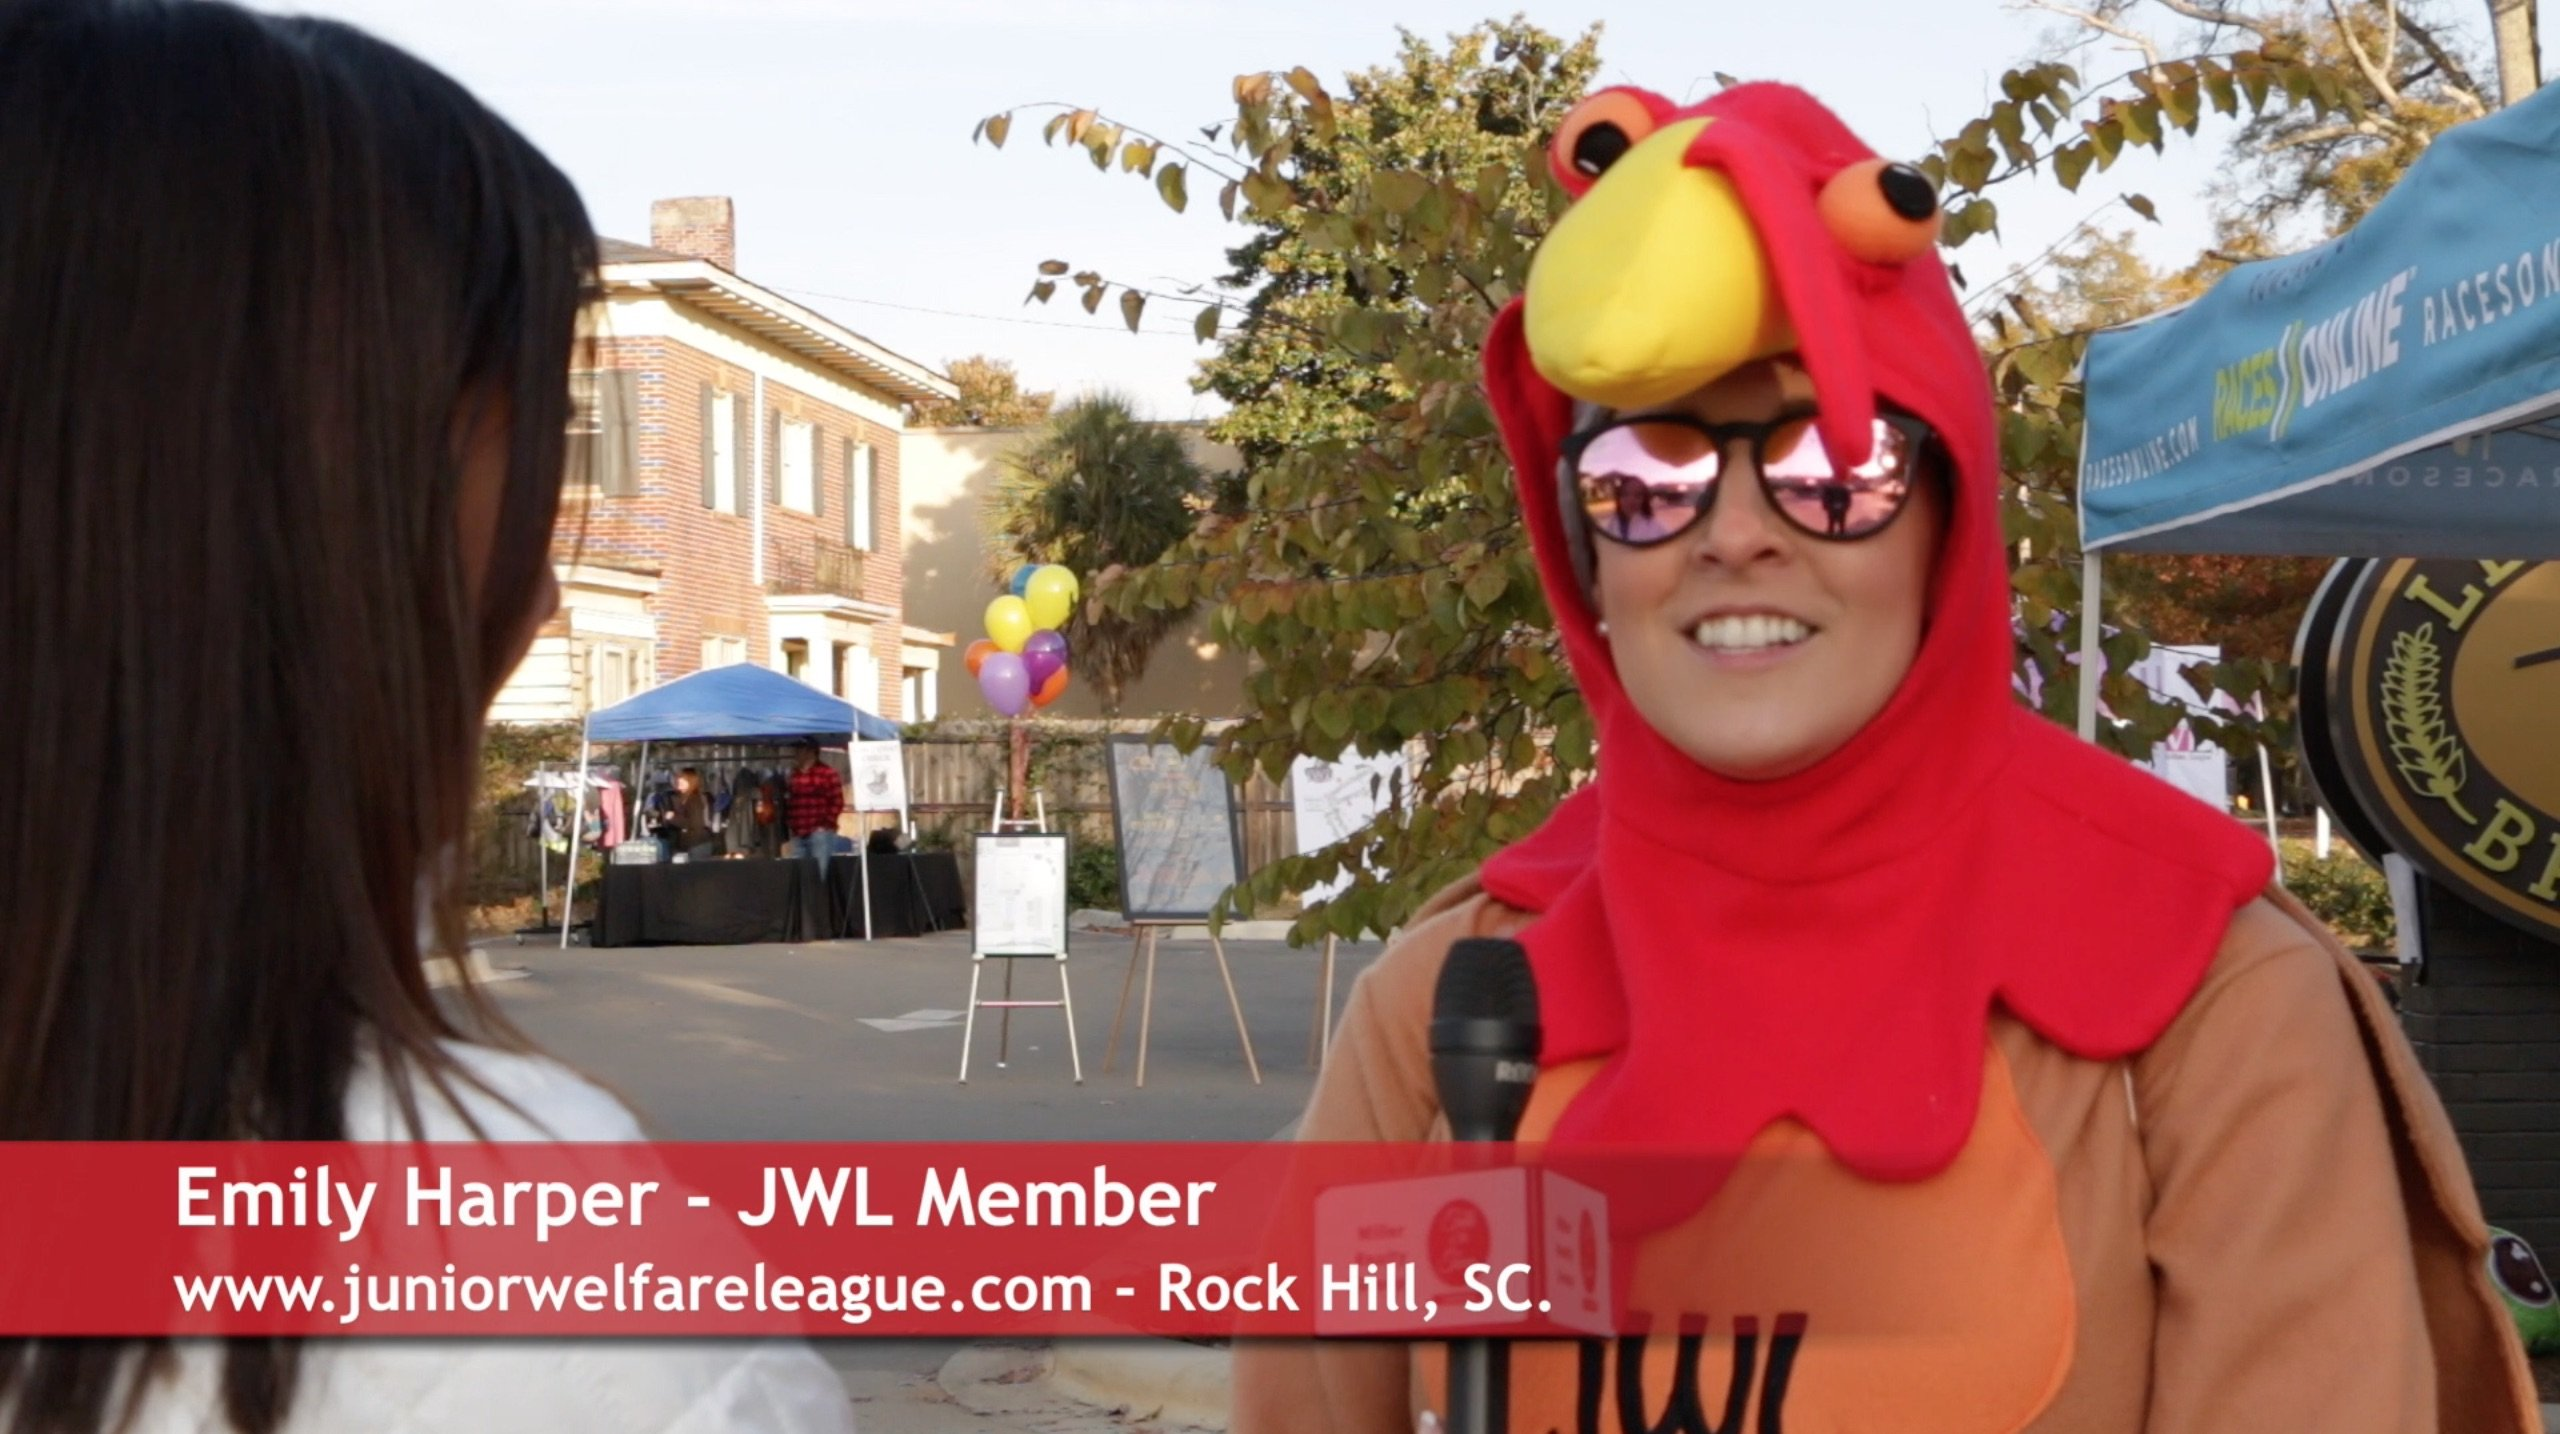 See The Junior Welfare League's Gobble Wobble Fundraiser